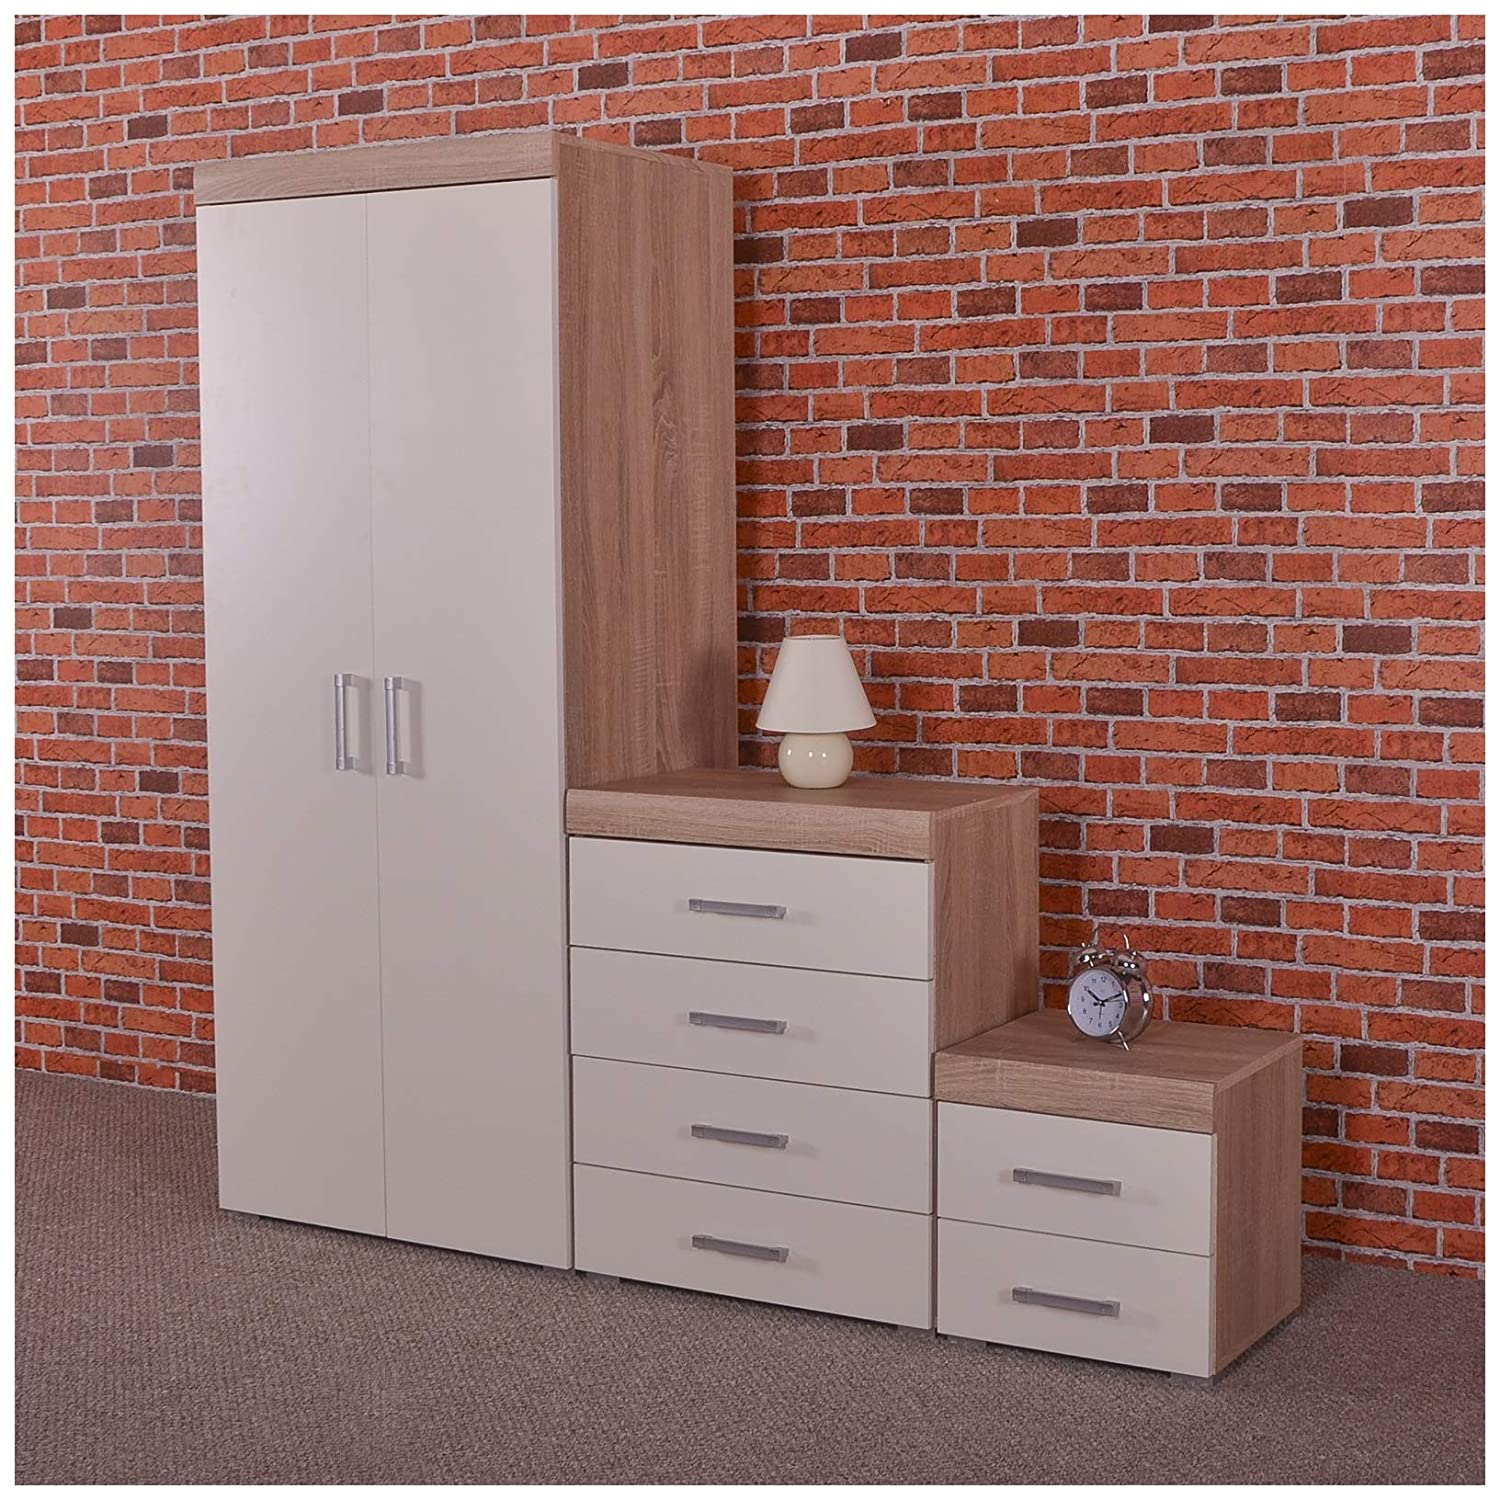 DRP Trading Bedroom Furniture Set *White & Sonoma Oak* Wardrobe, 4 Drawer Chest & 2 Draw Bedside Cabinet